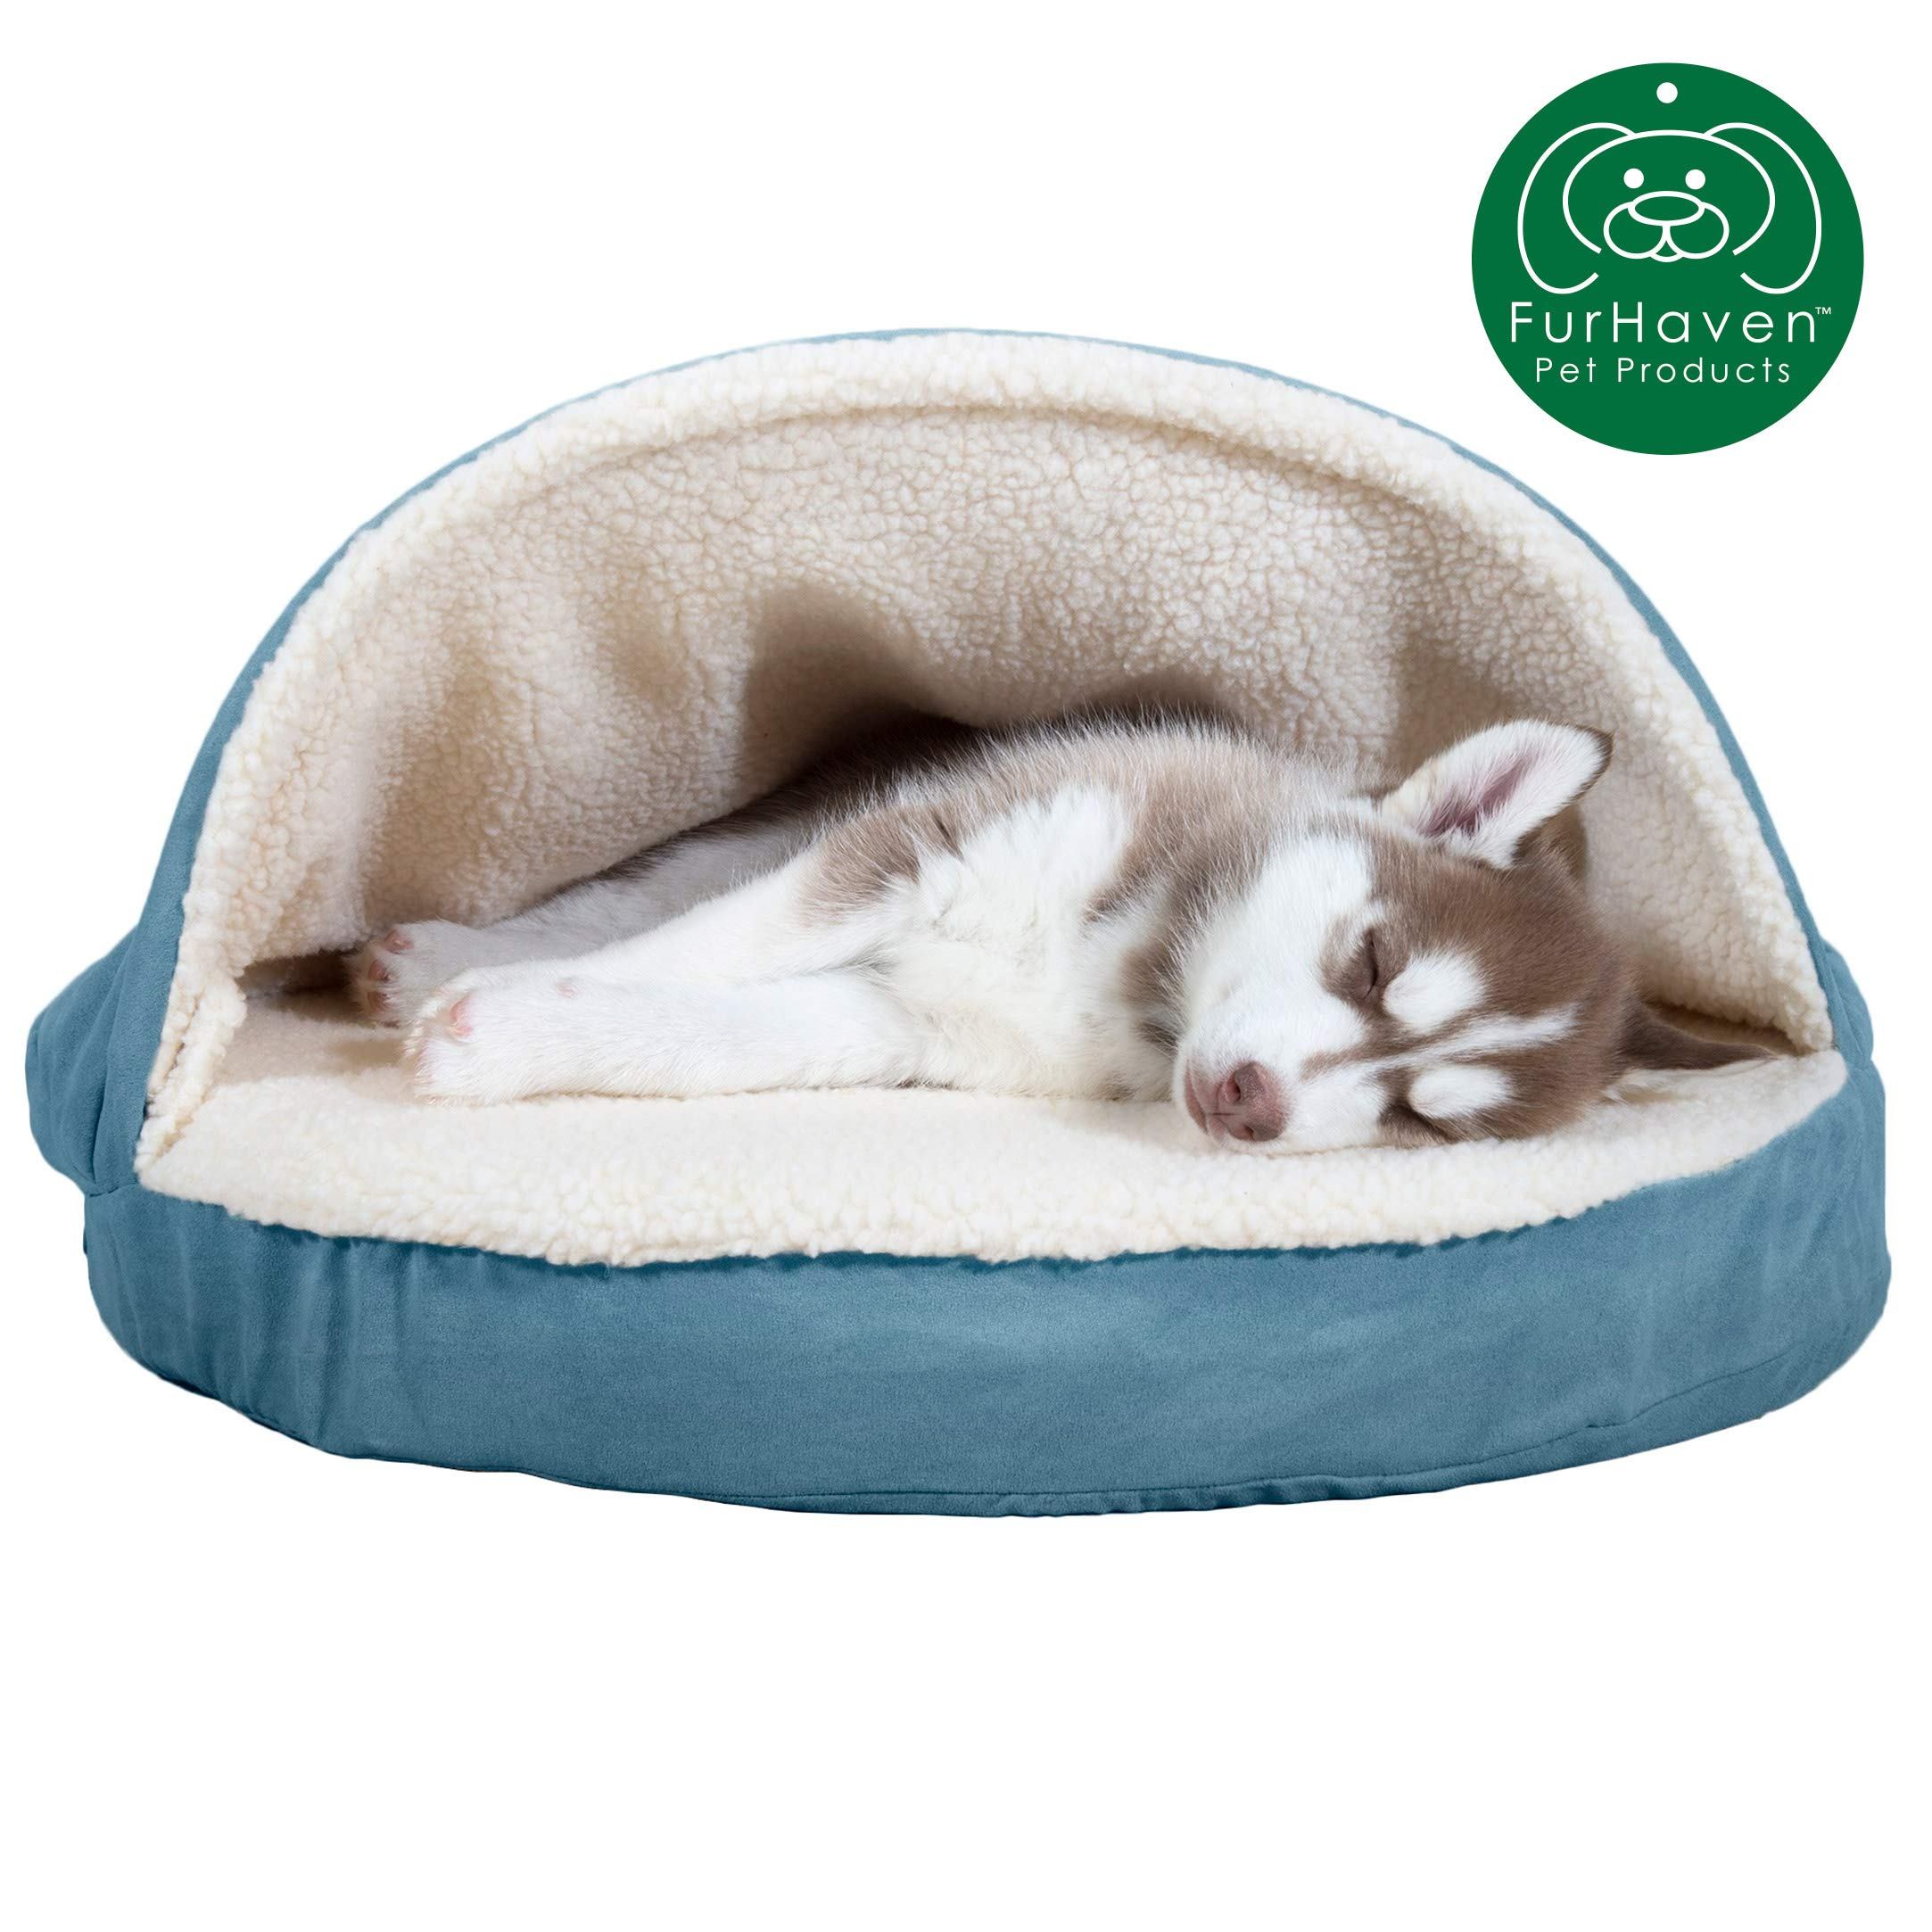 Furhaven Pet Dog Bed | Orthopedic Round Cuddle Nest Faux Sheepskin Snuggery Blanket Burrow Pet Bed w/ Removable Cover for Dogs & Cats, Blue, 26-Inch by Furhaven